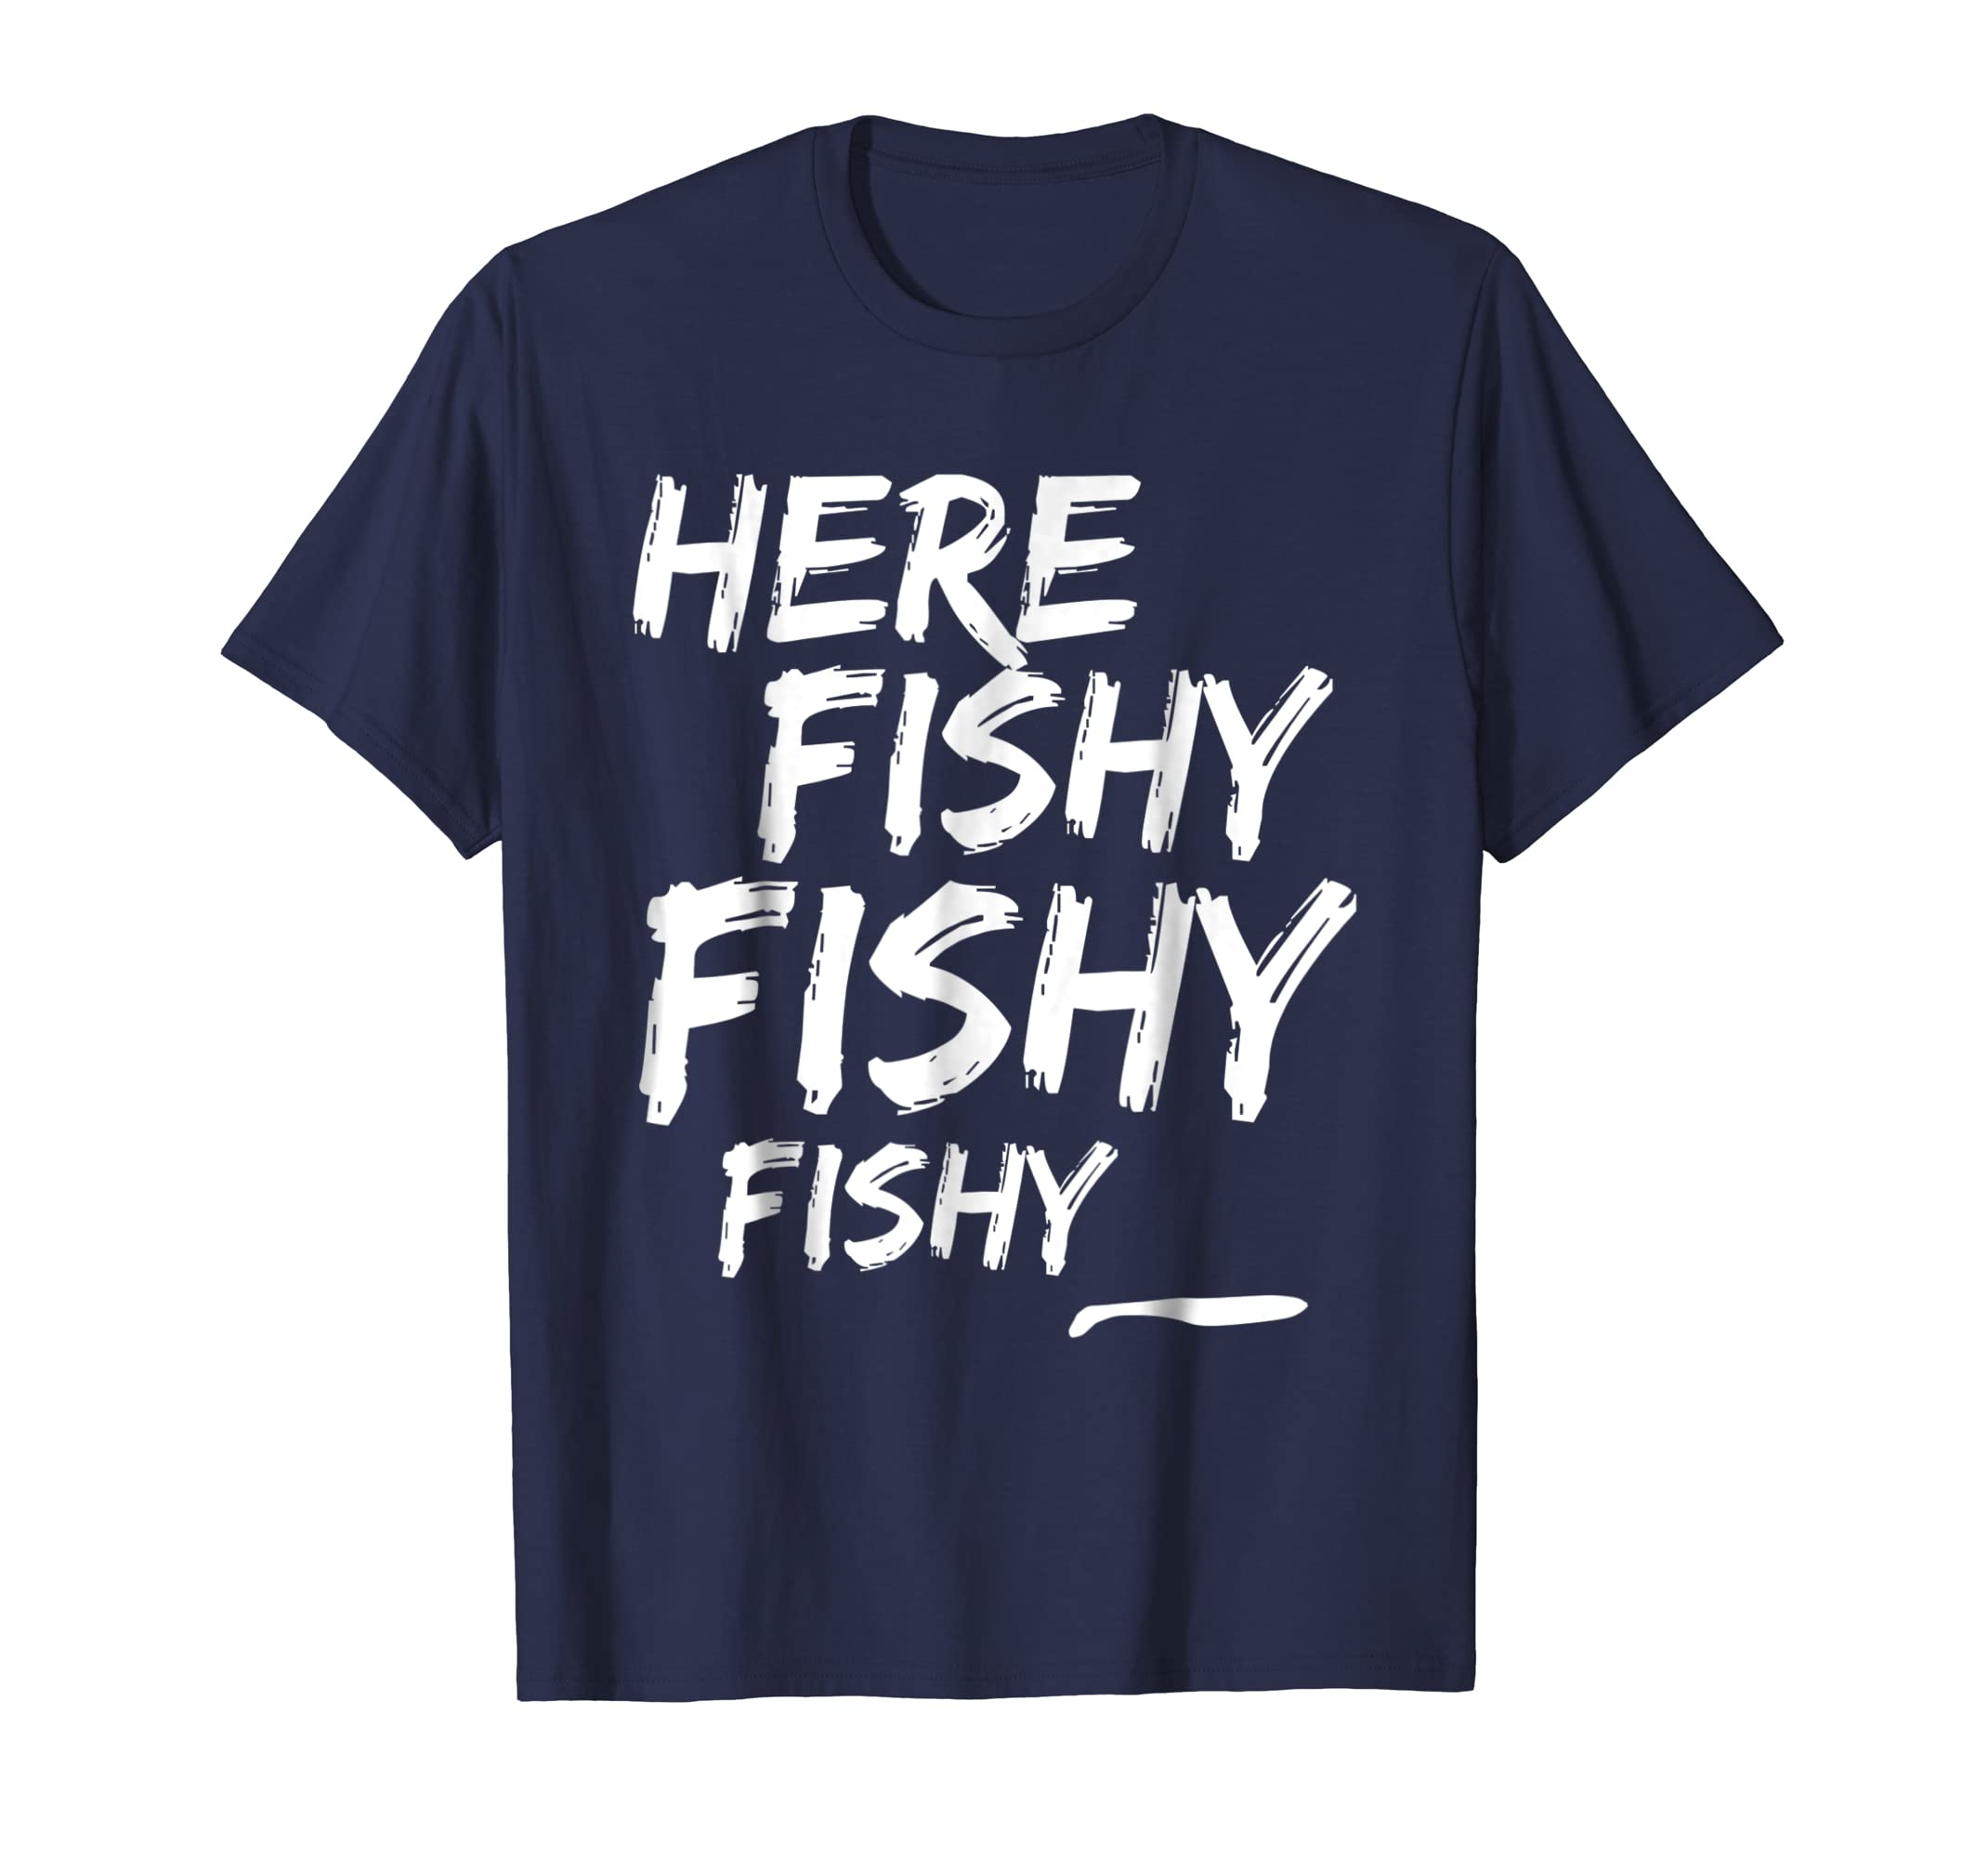 Funny Mens Short Sleeve Fishing Shirt Perfect Christmas Gift-azvn